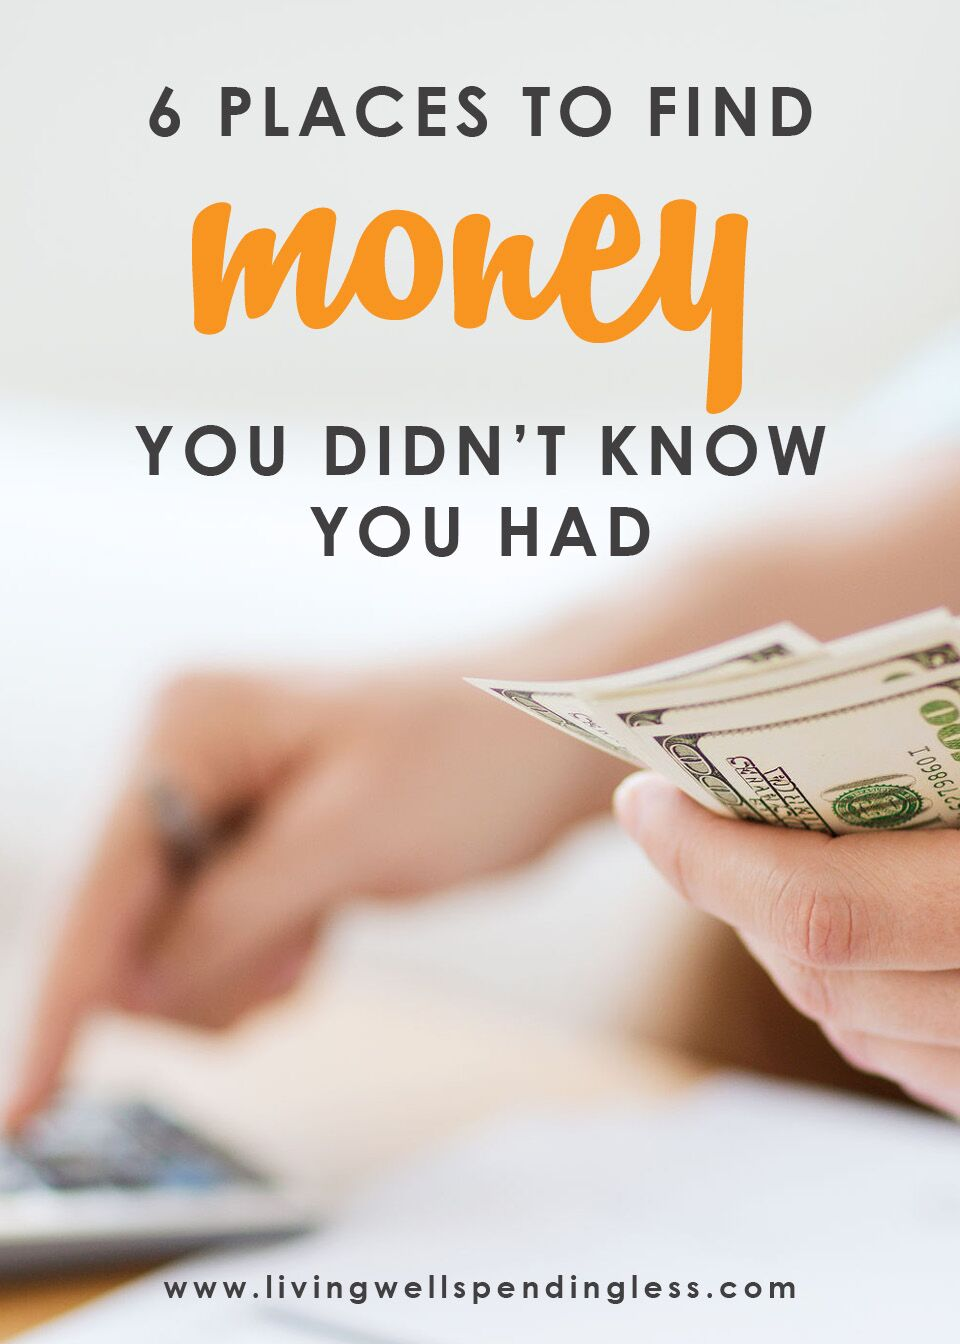 The Money You Didn't Know You Had